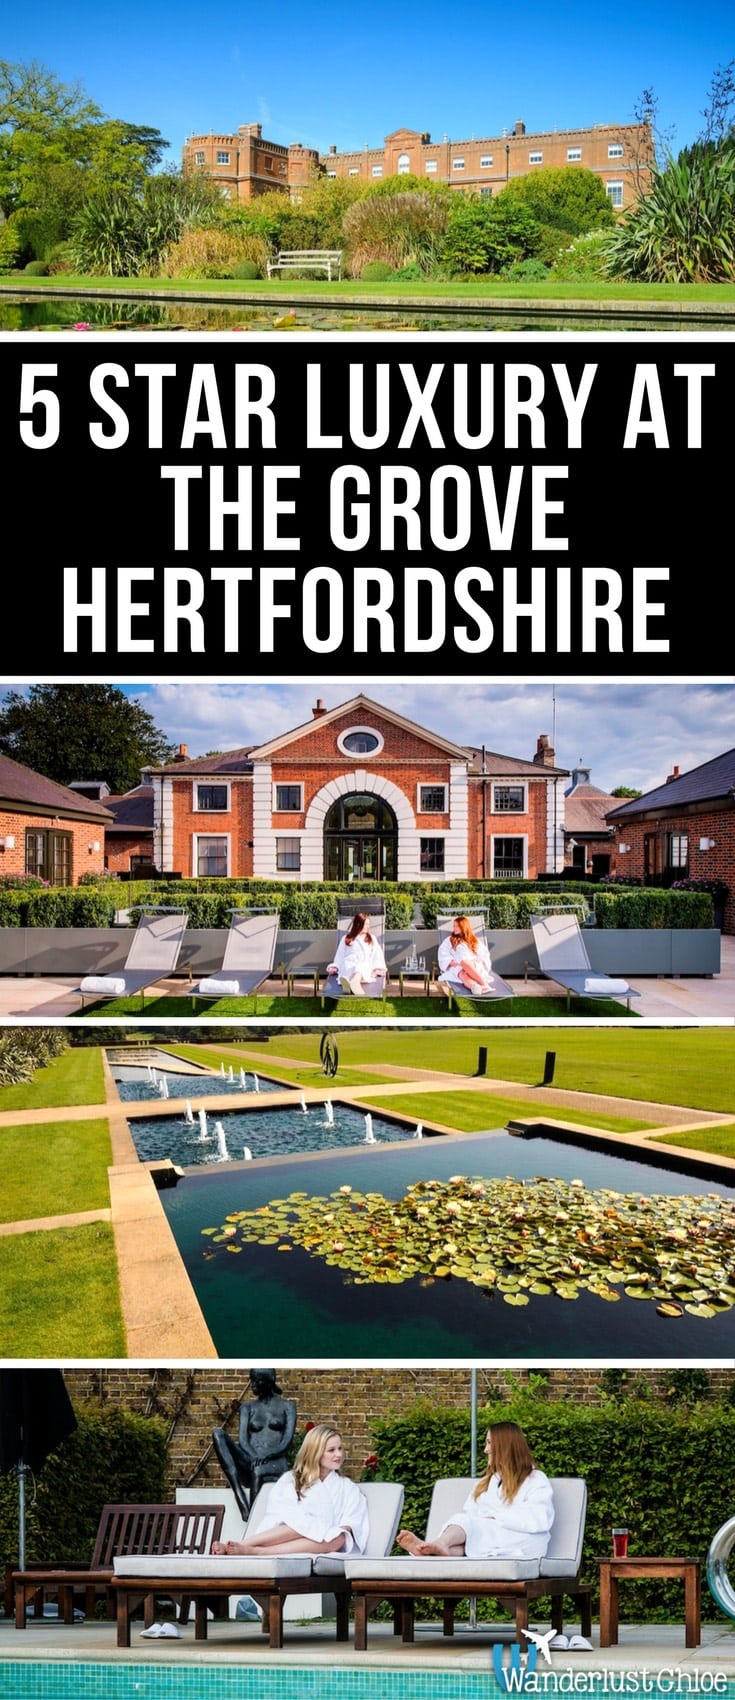 The Grove Hotel, Hertfordshire,England